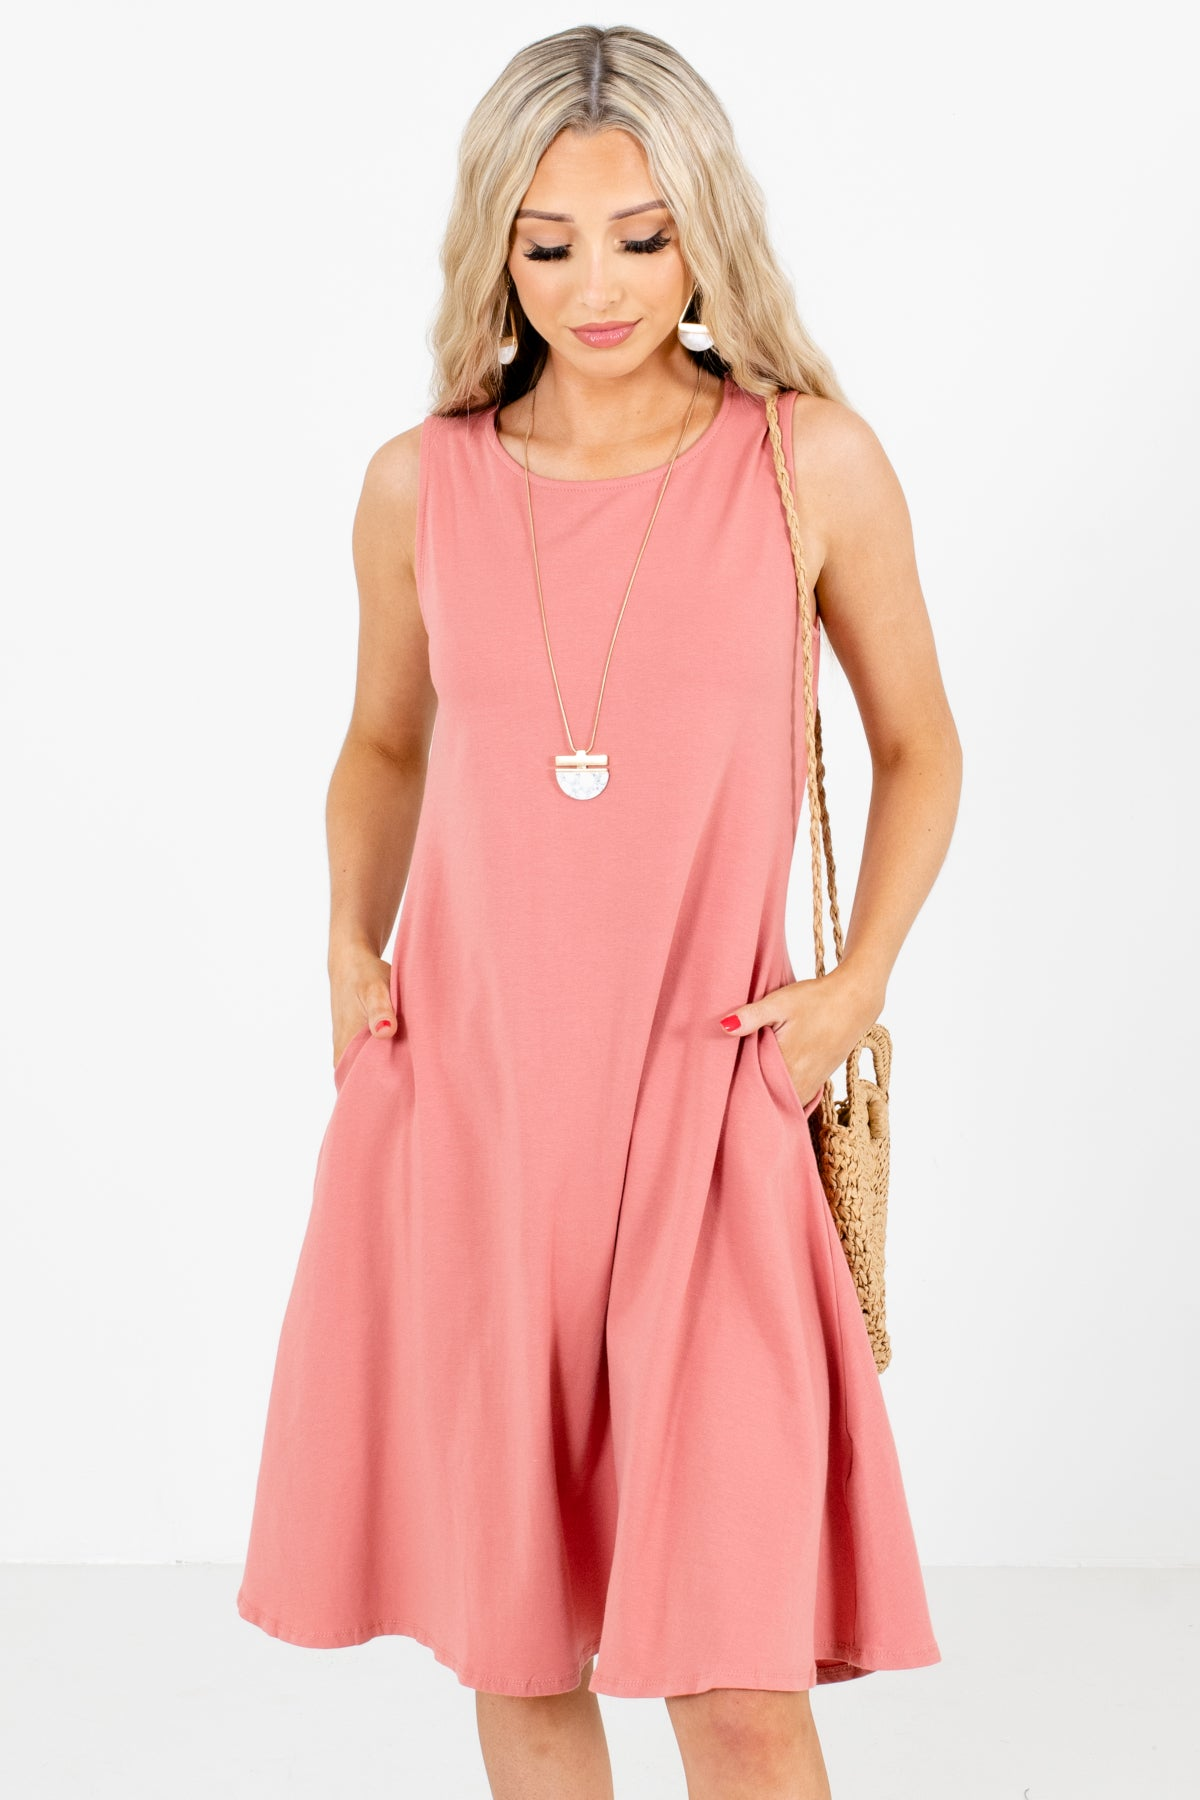 Pink Tank Style Boutique Knee-Length Dresses for Women